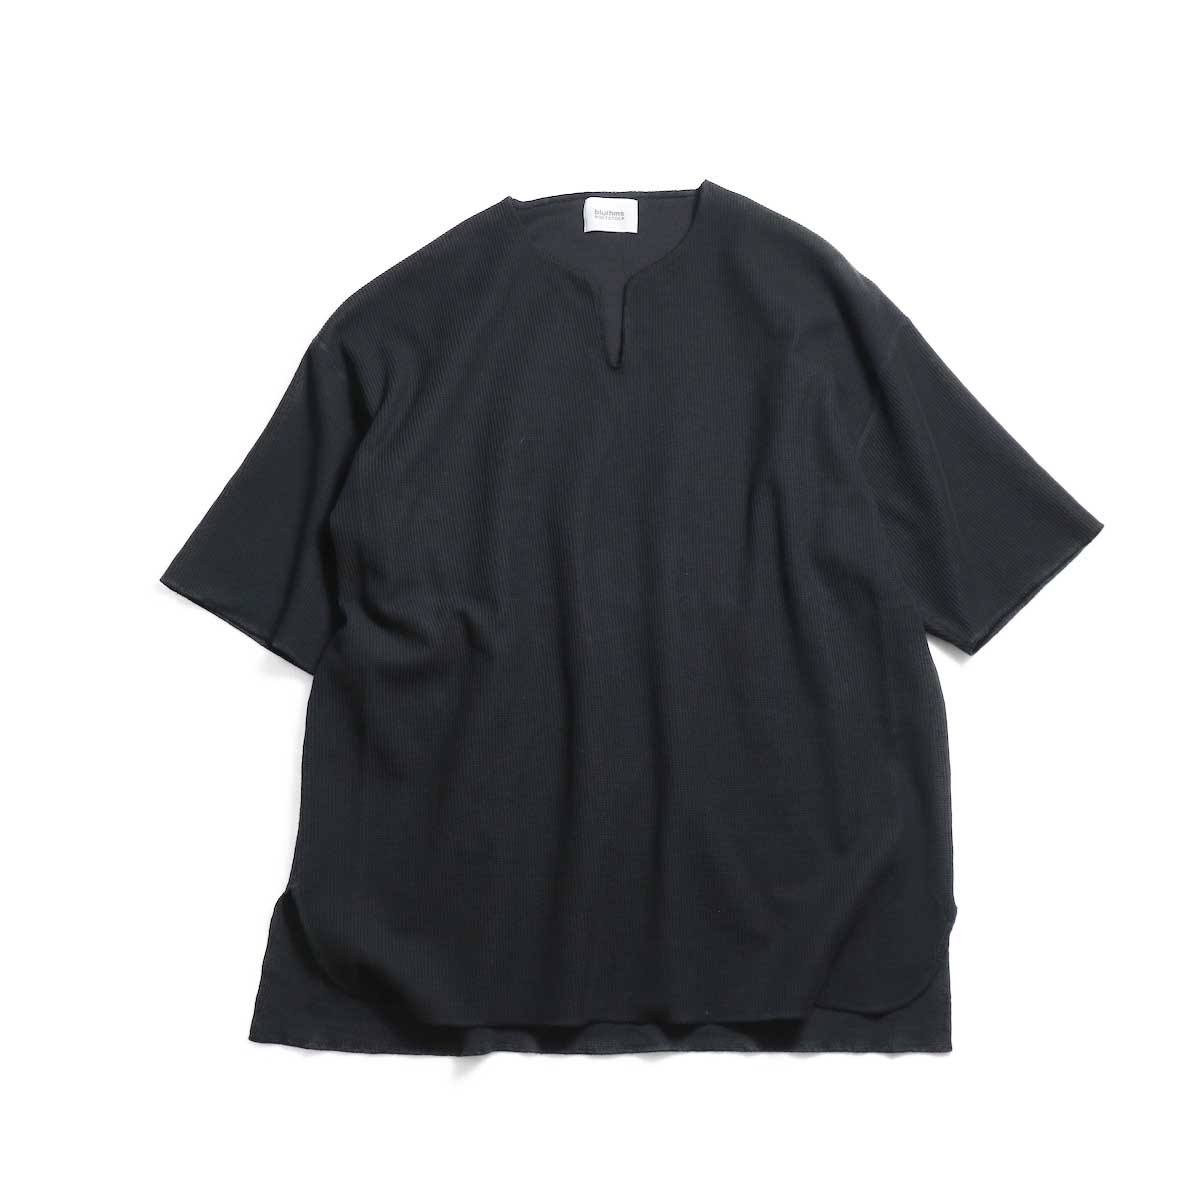 blurhms / New Rough & Smooth Thermal Over-Neck S/S -Black